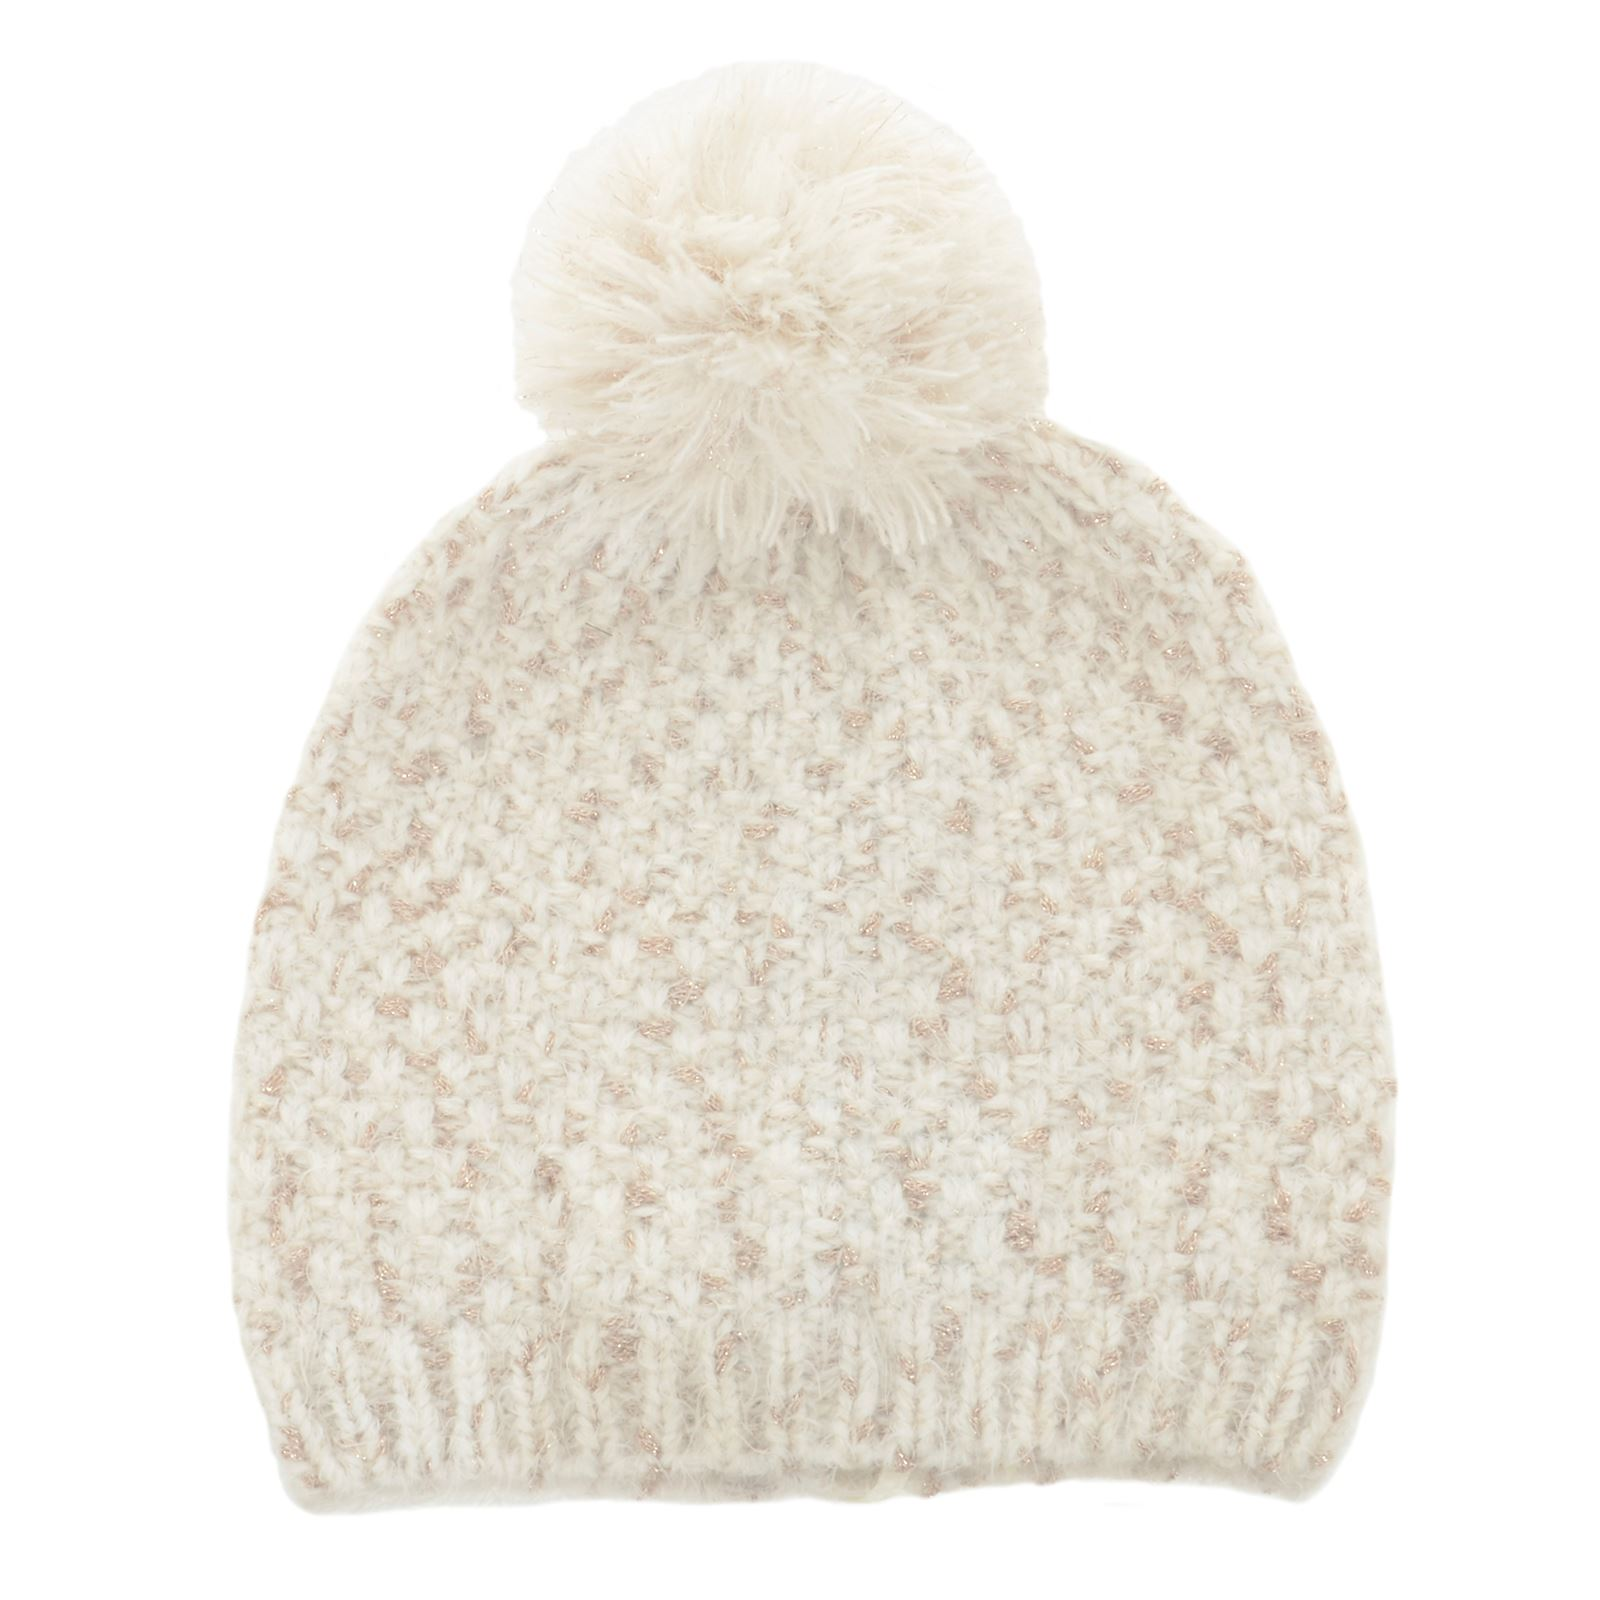 cdc12cb6c41 Details about Womens Ladies Ivory Gold Knit Beanie Hat With Pom Pom Fashion  (Maddie)